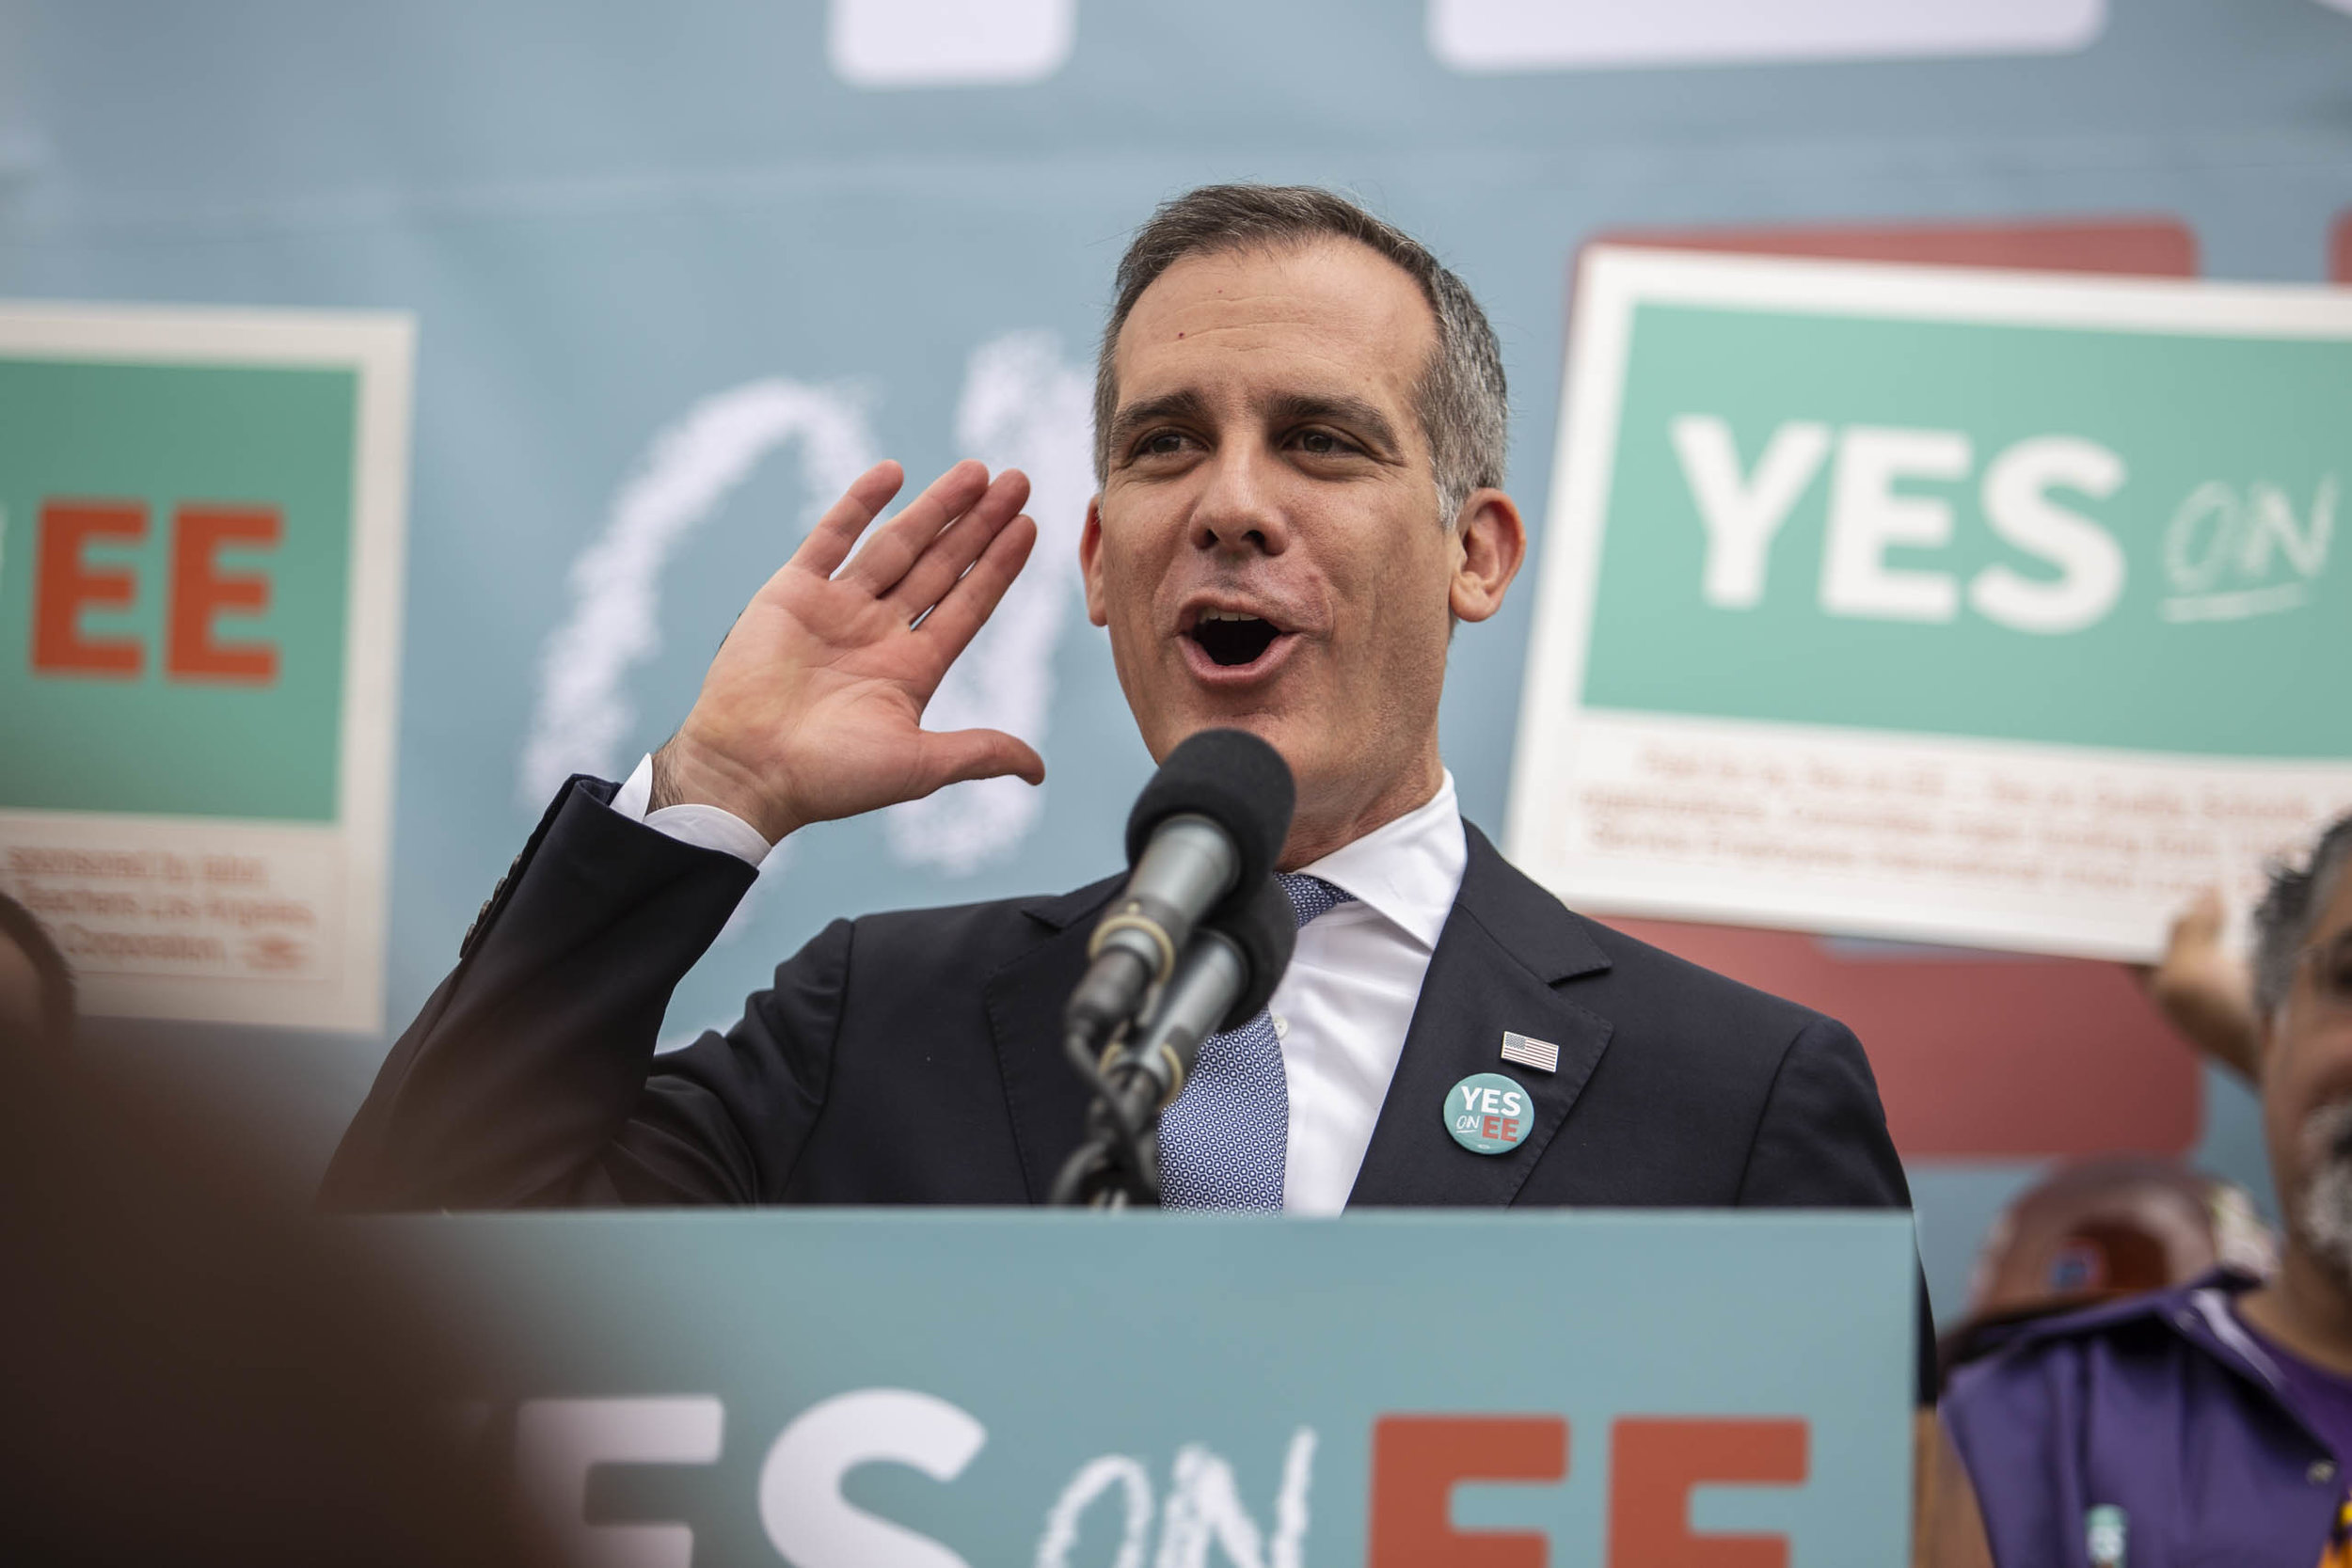 Los Angeles Mayor, Eric Garcetti, during the rally in support of Mayor Pete Buttigieg for his 2020 presidential campaign and Measure EE, which would raise $500 million for the Los Angeles Unified School District on Thursday, May 9, 2019 in Los Angeles, Calif. (Yasamin Jtehrani / The Corsair)